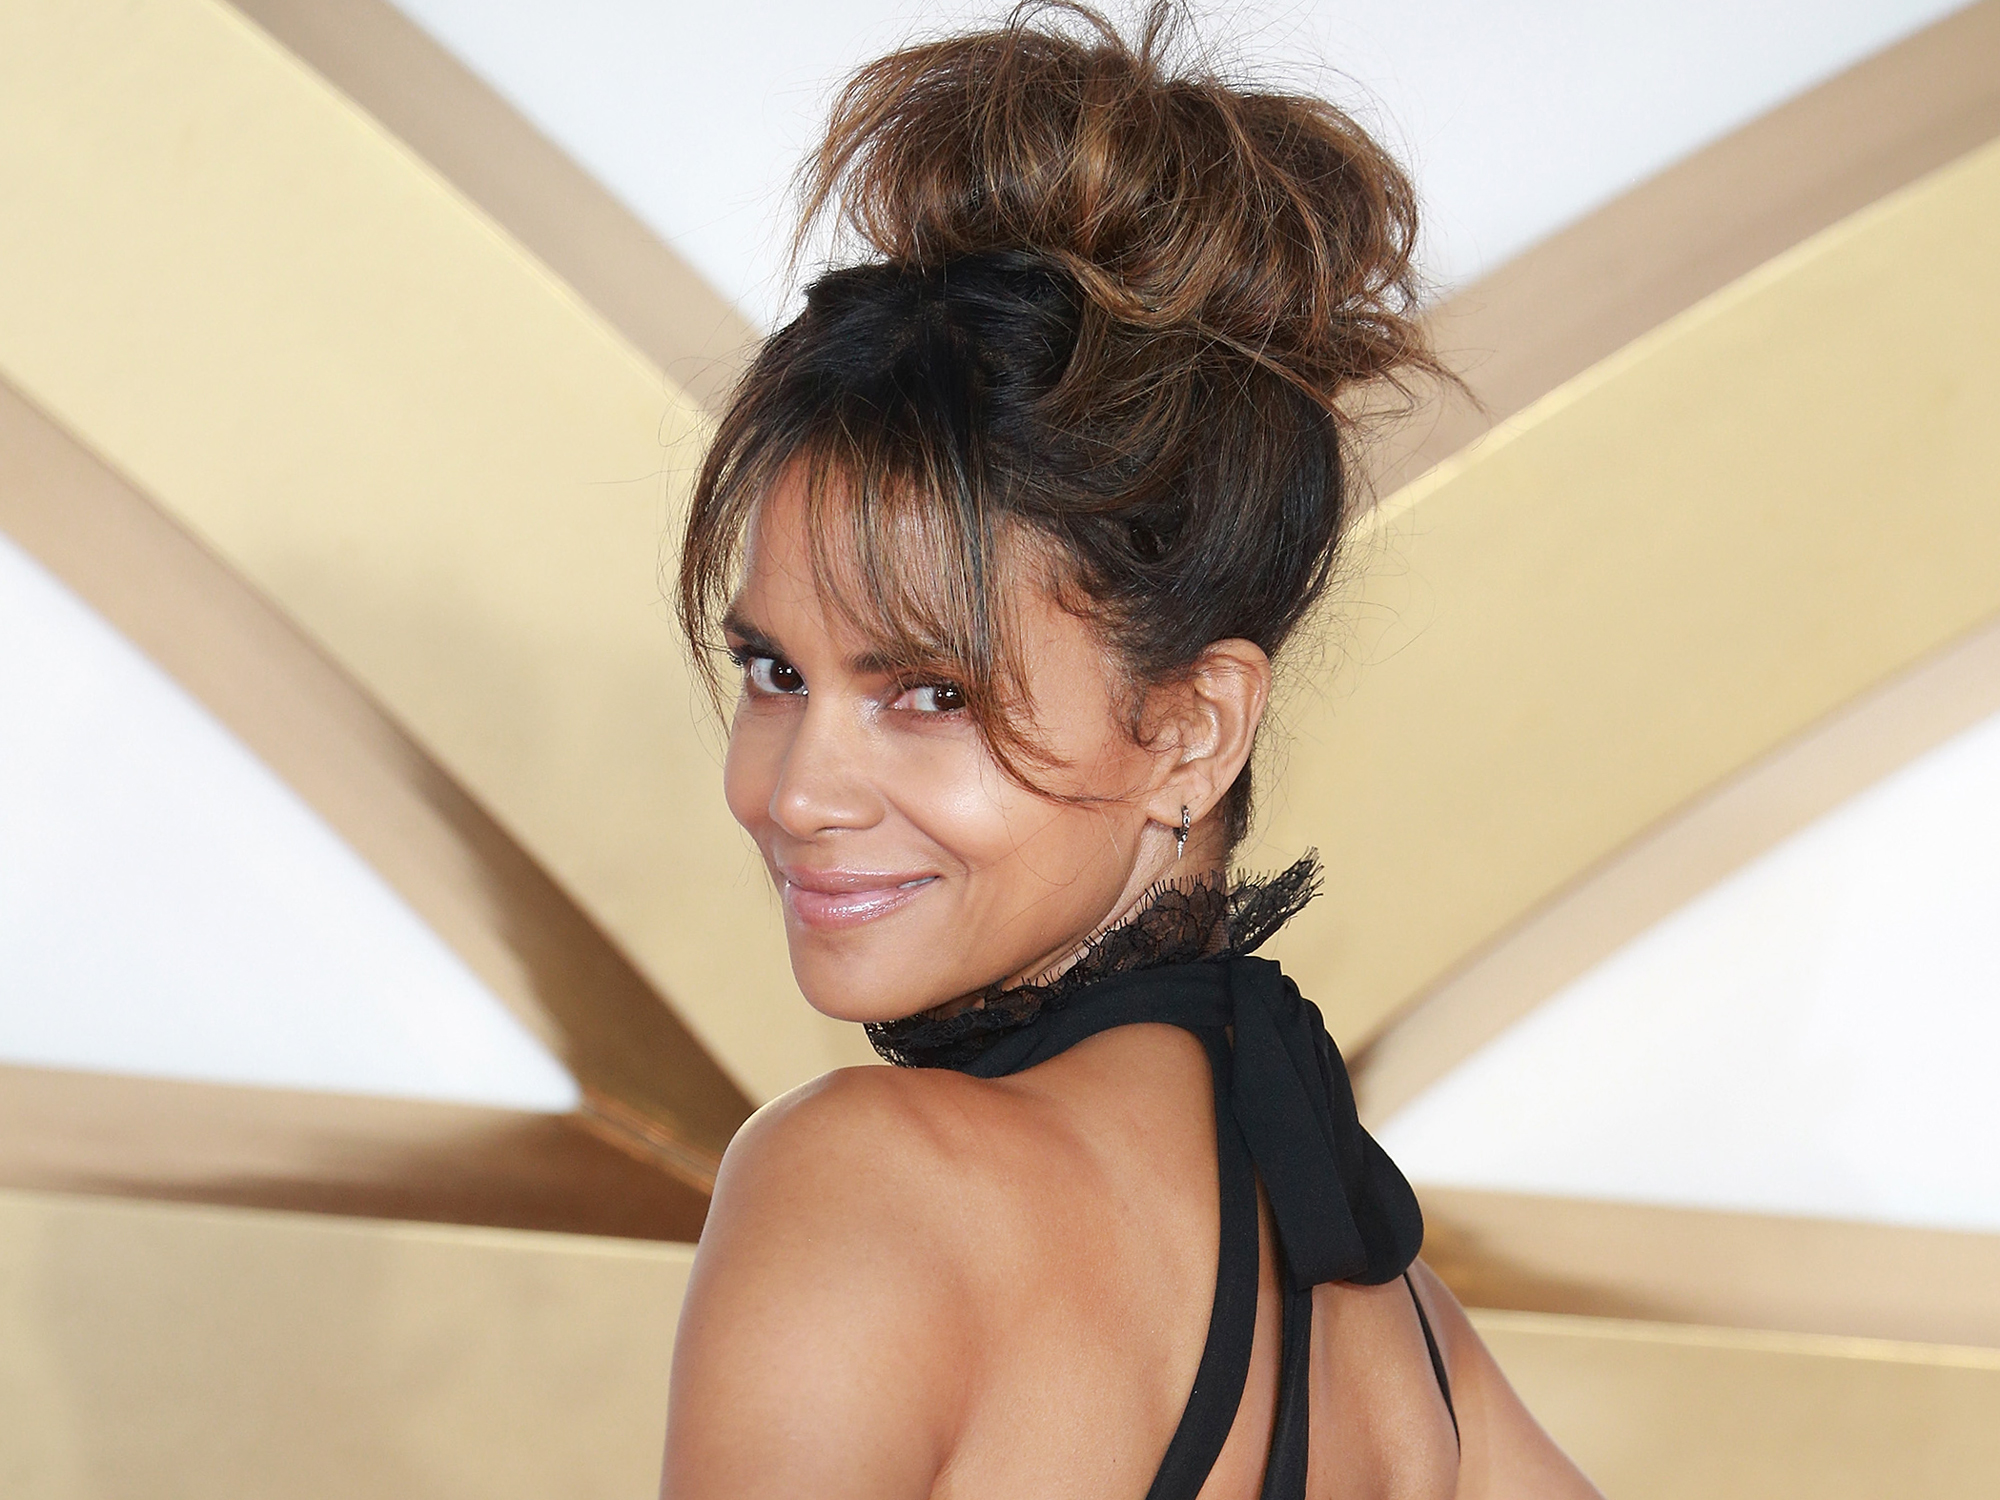 Halle Berry confirms relationship with Alex Da Kid on Instagram